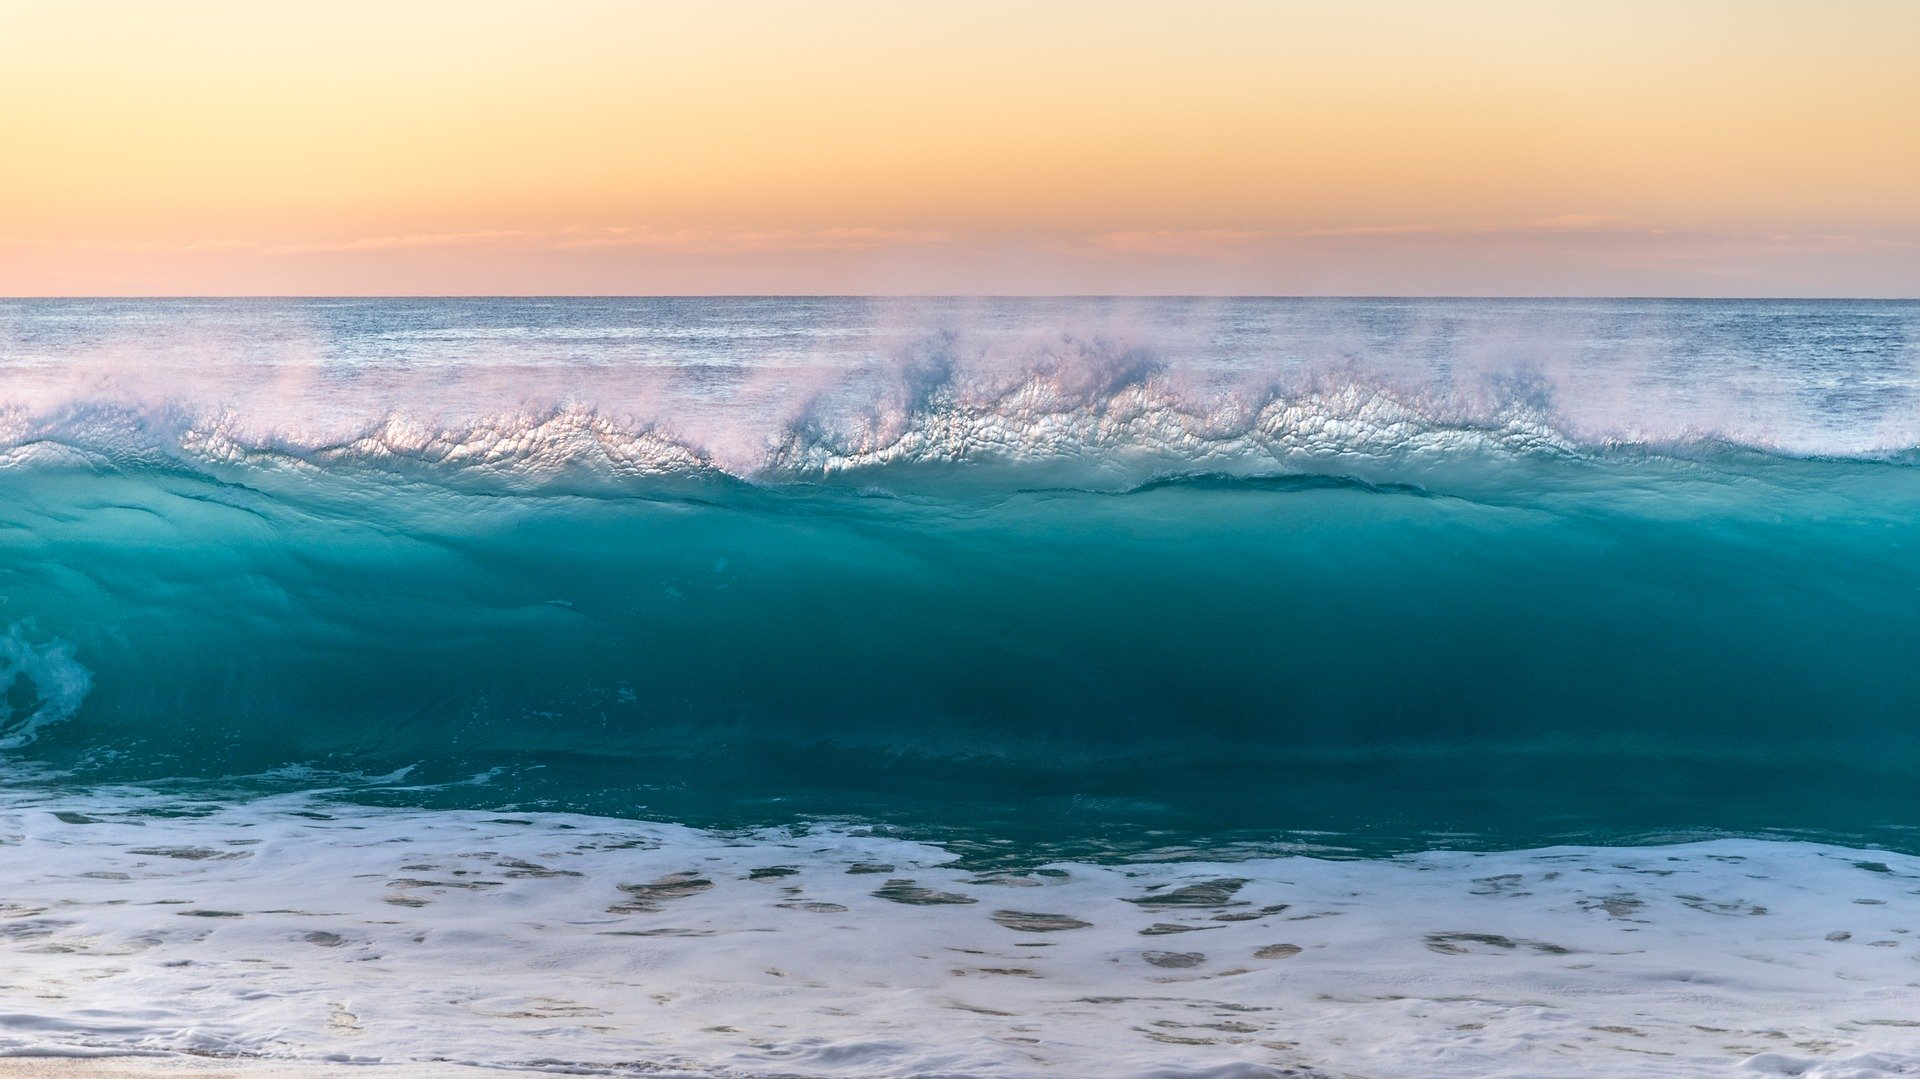 turquoise and white ocean waves against an orange sunset